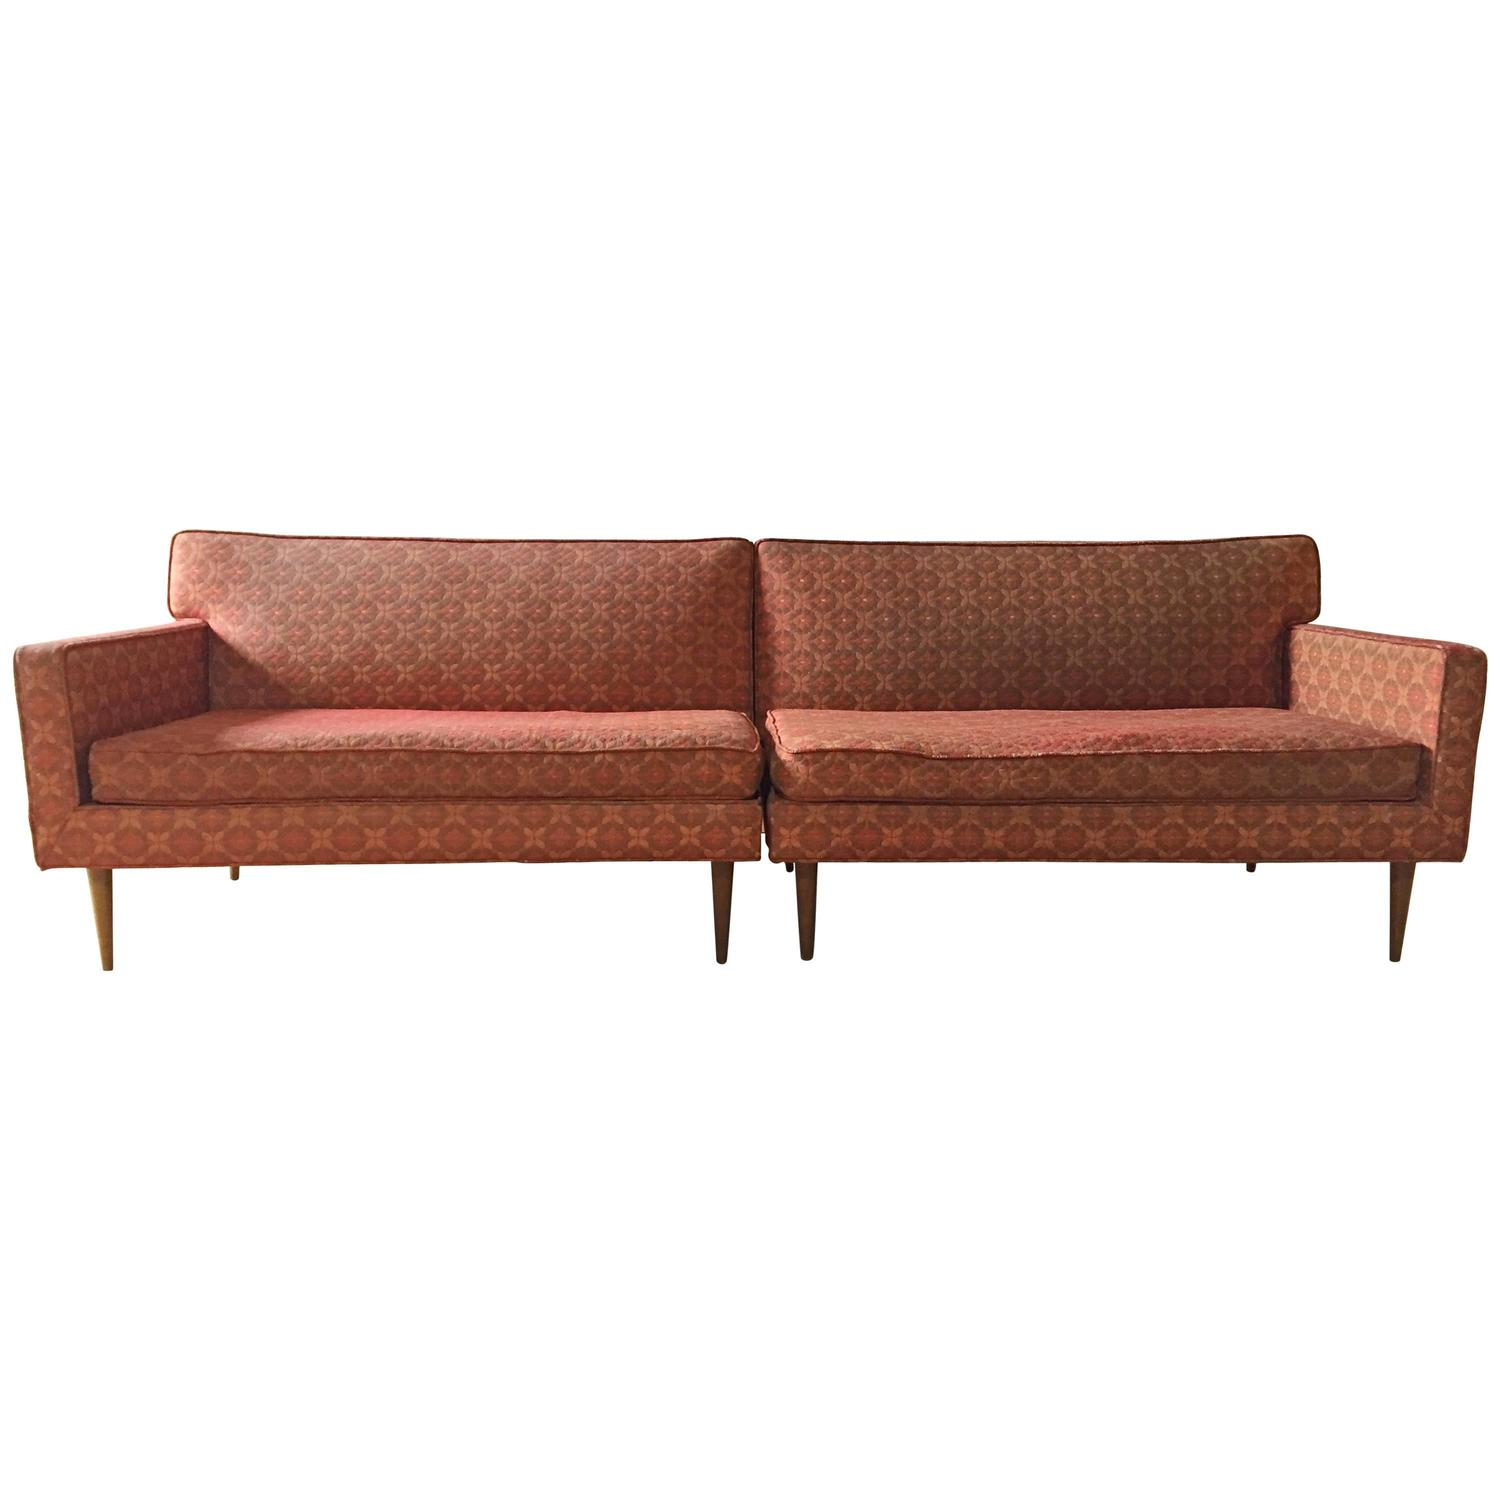 Vintage Mid Century Sectional Sofa attributed to Paul McCobb at